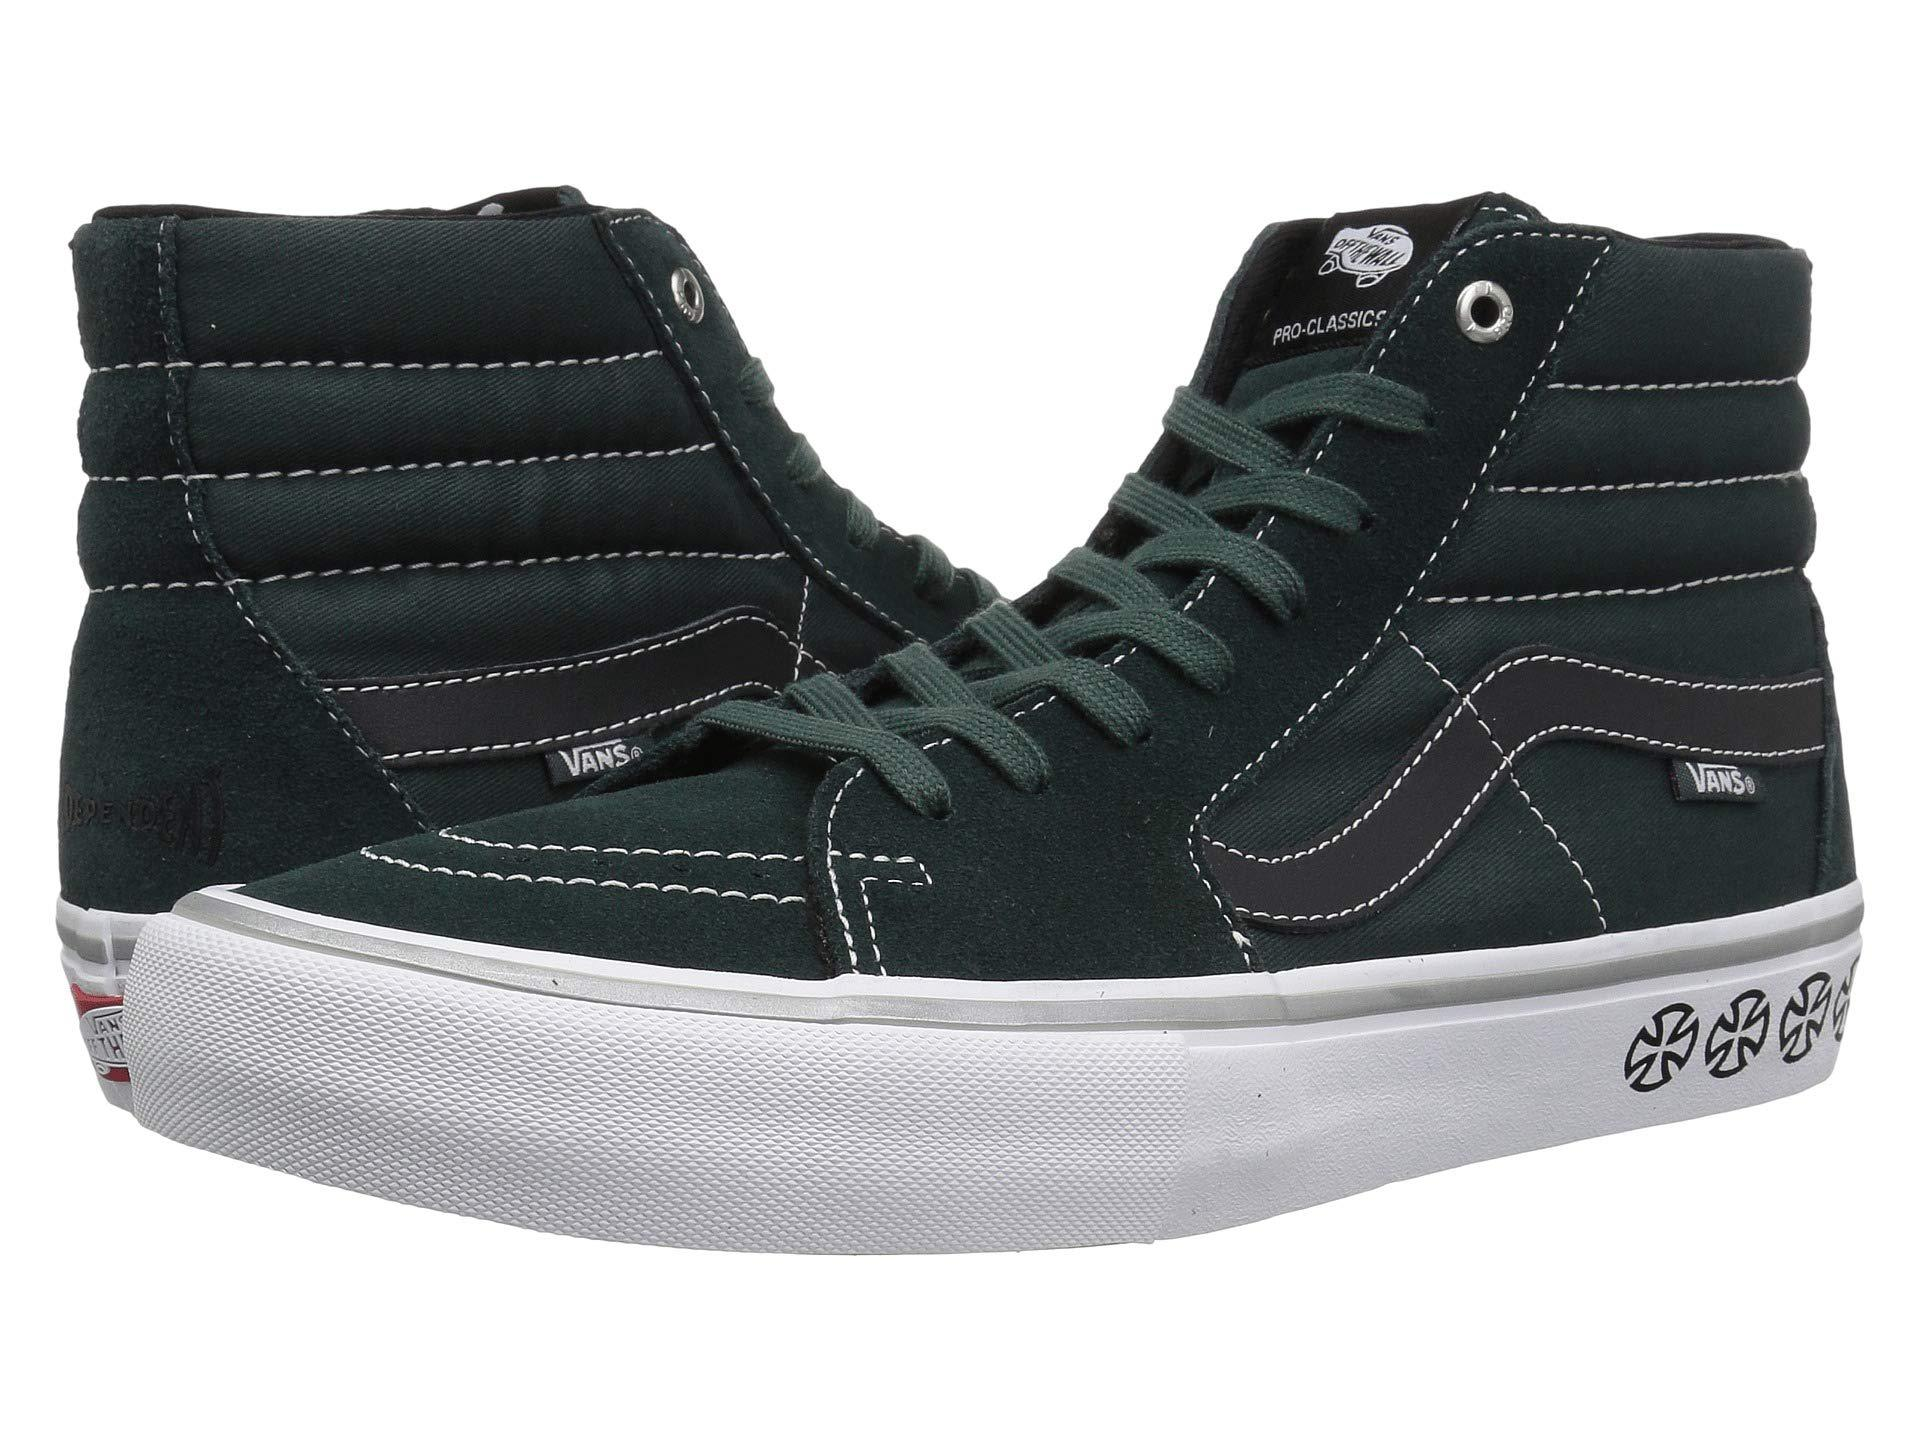 2eb7e5b343 Lyst - Vans Sk8-hitm Pro ((independent) Spruce) Men s Skate Shoes in ...